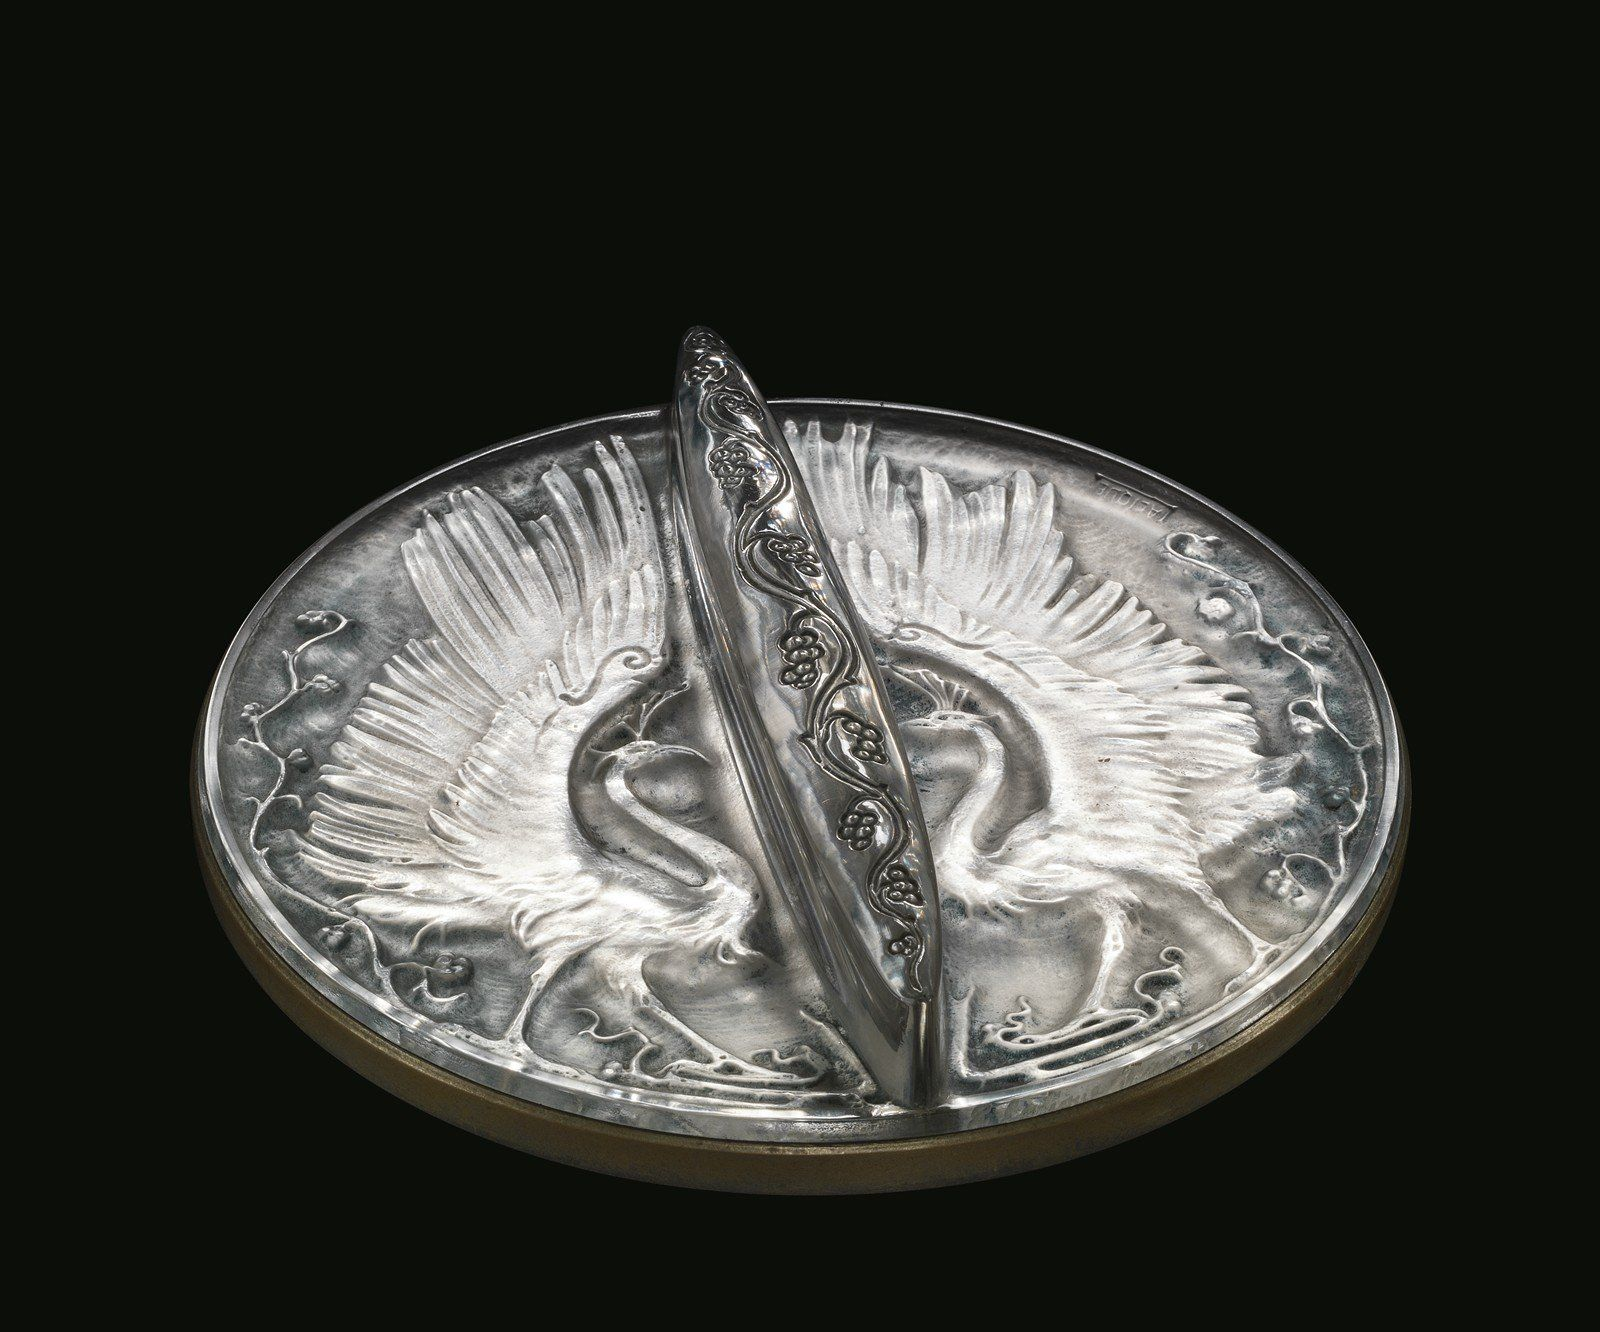 Deux oiseaux (Two birds) by Rene #Lalique,  designed in 1914 | Corning Museum of #Glass